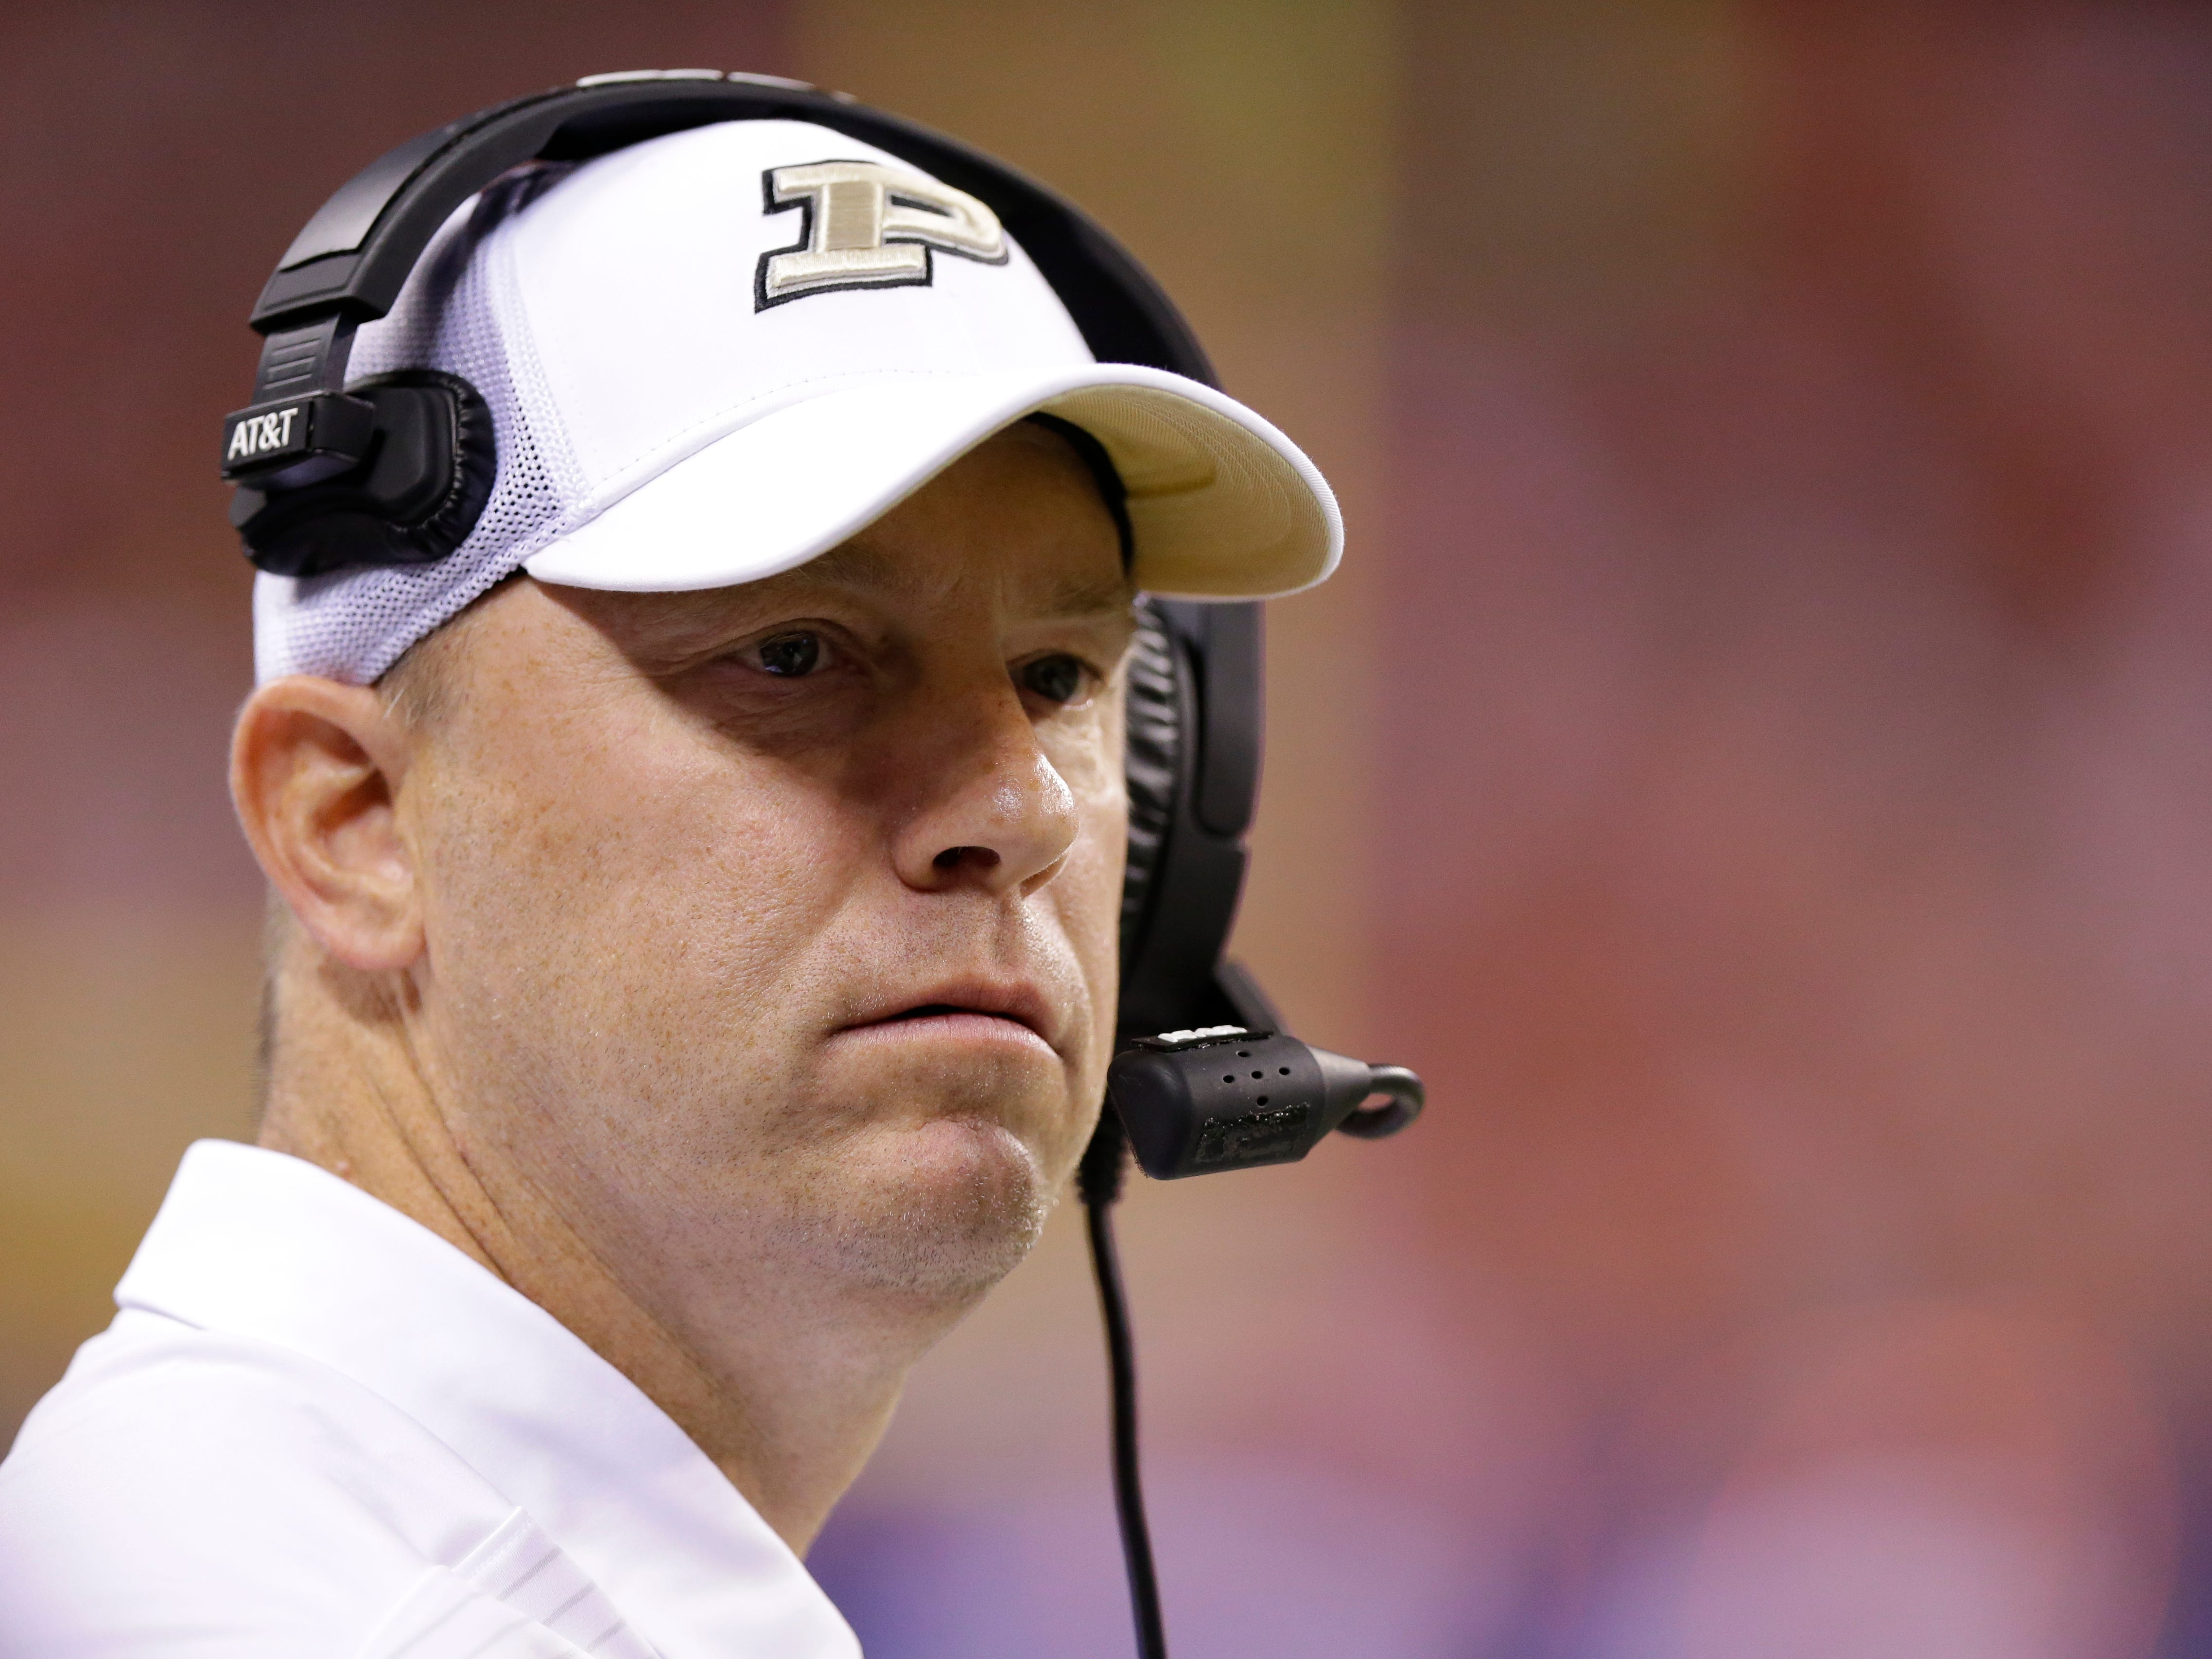 FILE - In this Saturday, Sept. 2, 2017 file photo, Purdue head coach Jeff Brohm yells from the sideline as his team played against Purdue during the first half of an NCAA college football game in Indianapolis. Jeff Brohm came to Purdue to win. The first-year coach still believes he can even with some midseason missteps. Nebraska coach Mike Riley understands. The Boilermakers and Cornhuskers have both lost back-to-back games. They both need three wins to become bowl eligible. And both know that the turnaround must begin Saturday night, Oct. 28, 2017 in West Lafayette, Indiana. (AP Photo/Michael Conroy, File)